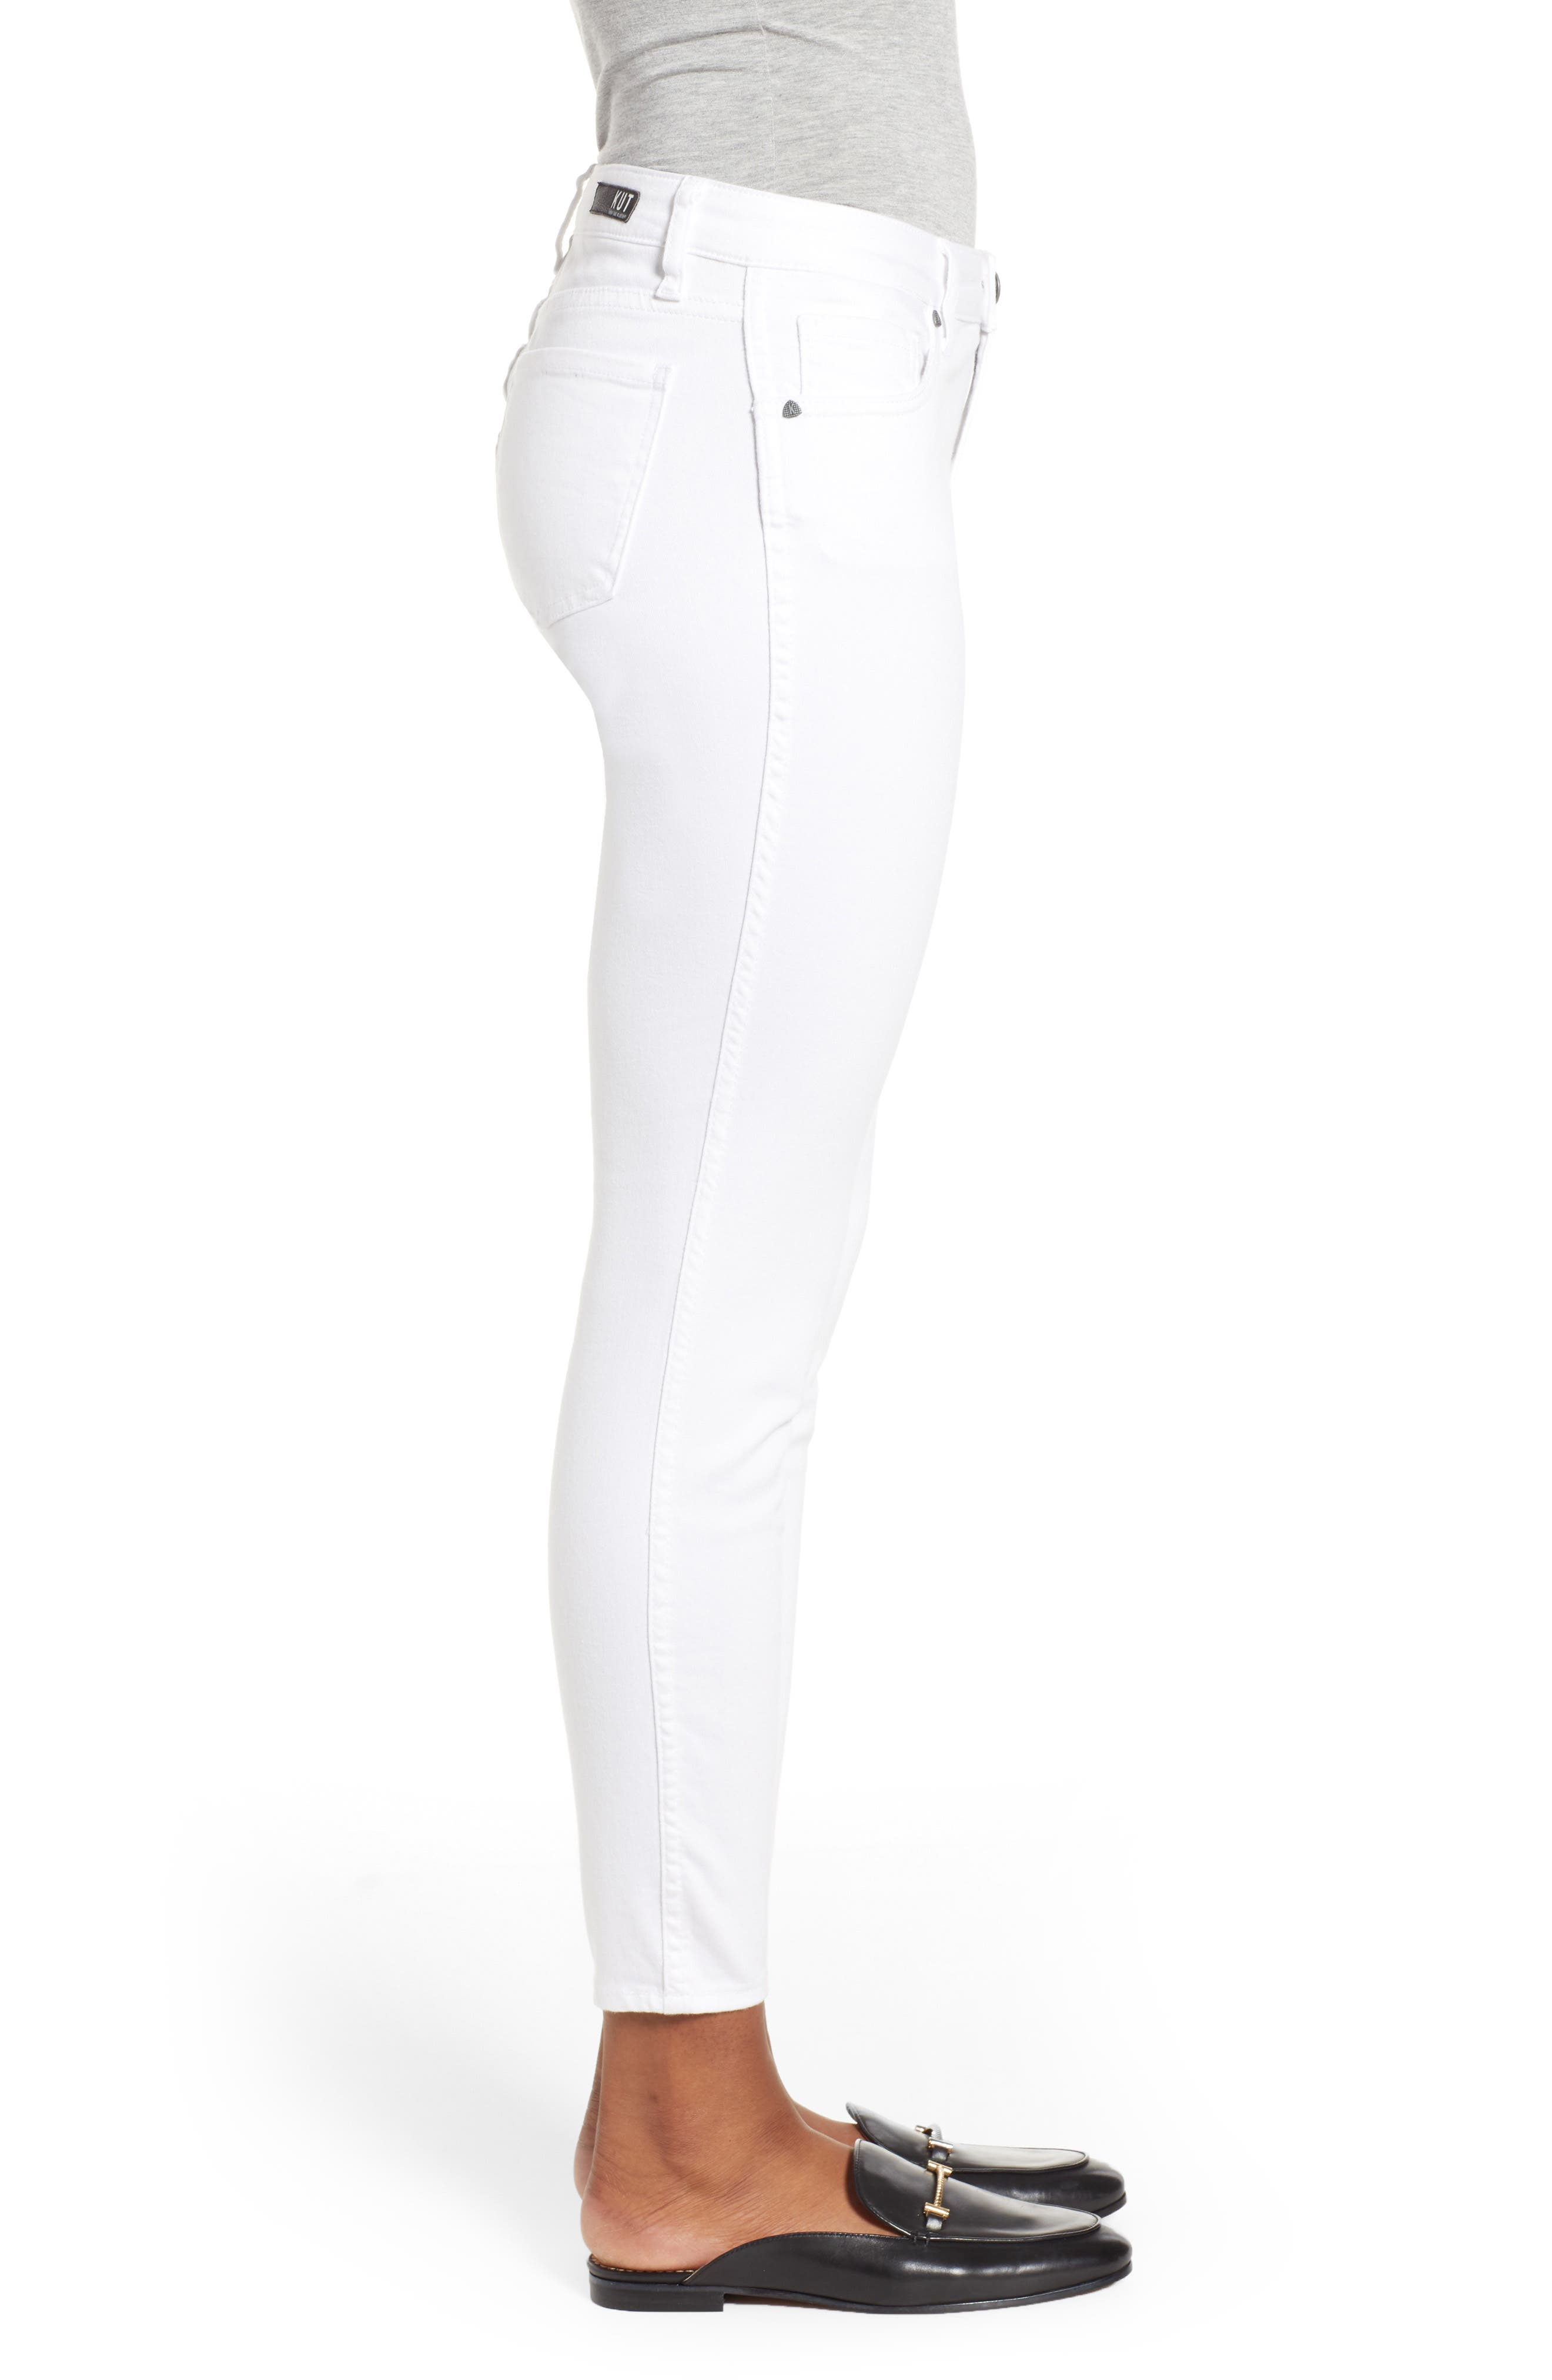 KUT FROM THE KLOTH, Donna Ankle Skinny Jeans, Alternate thumbnail 4, color, OPTIC WHITE